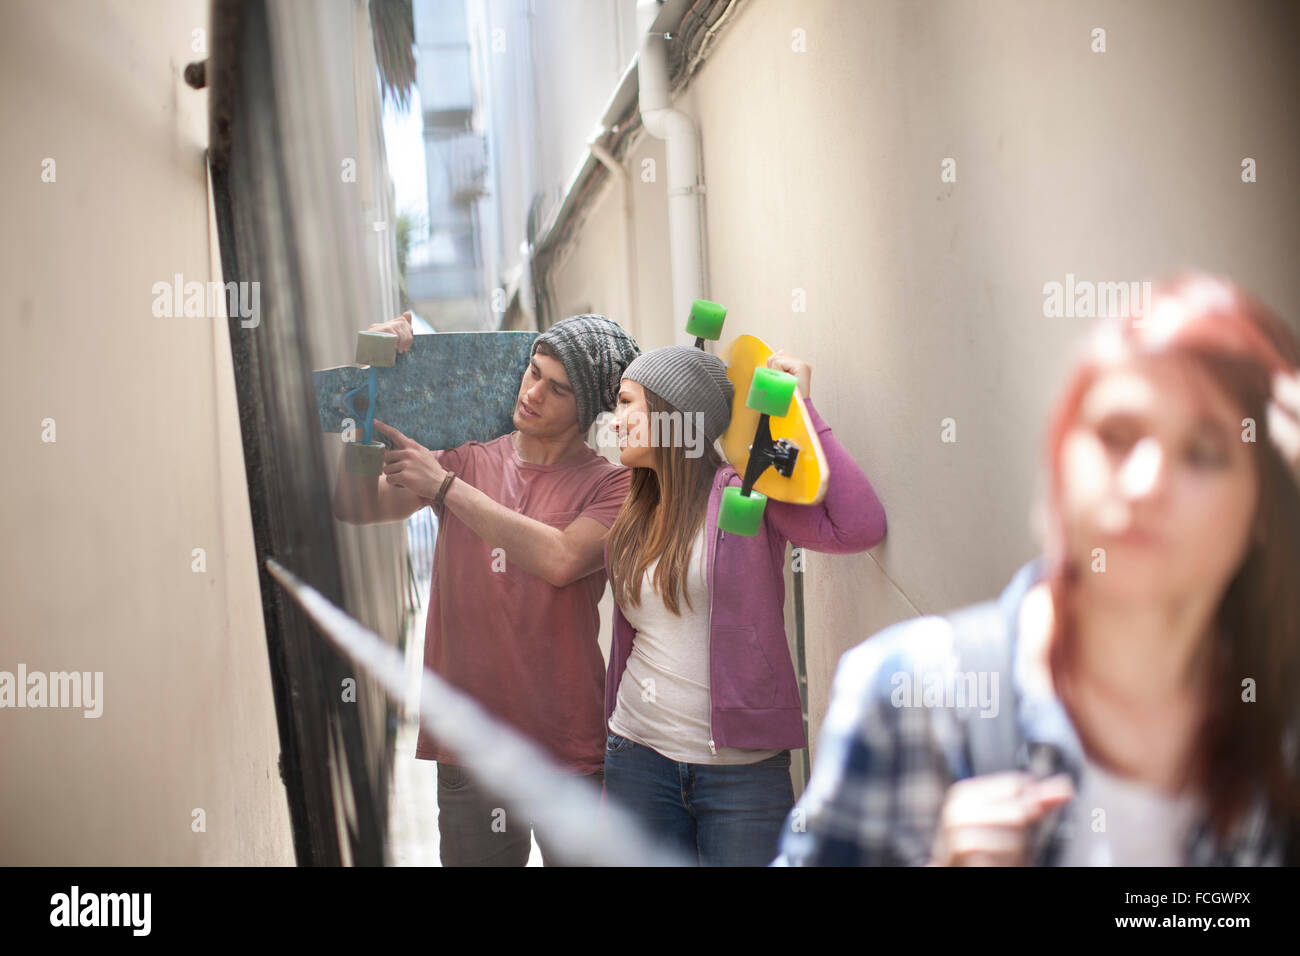 Friends   skateboards in a passageway - Stock Image